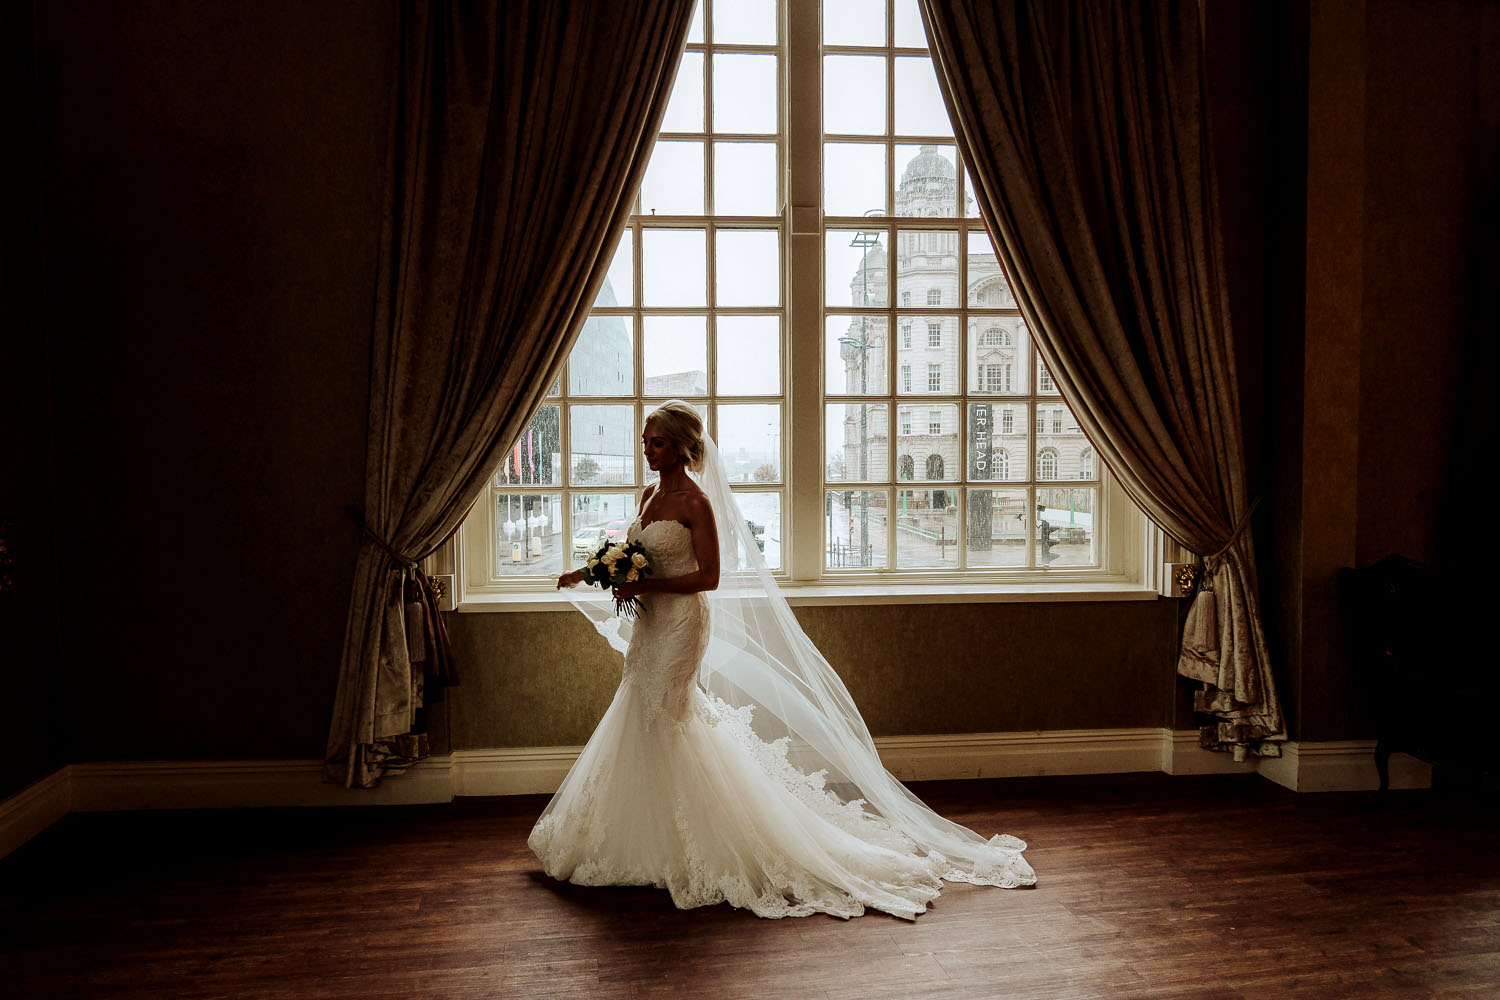 bride beneath grand window